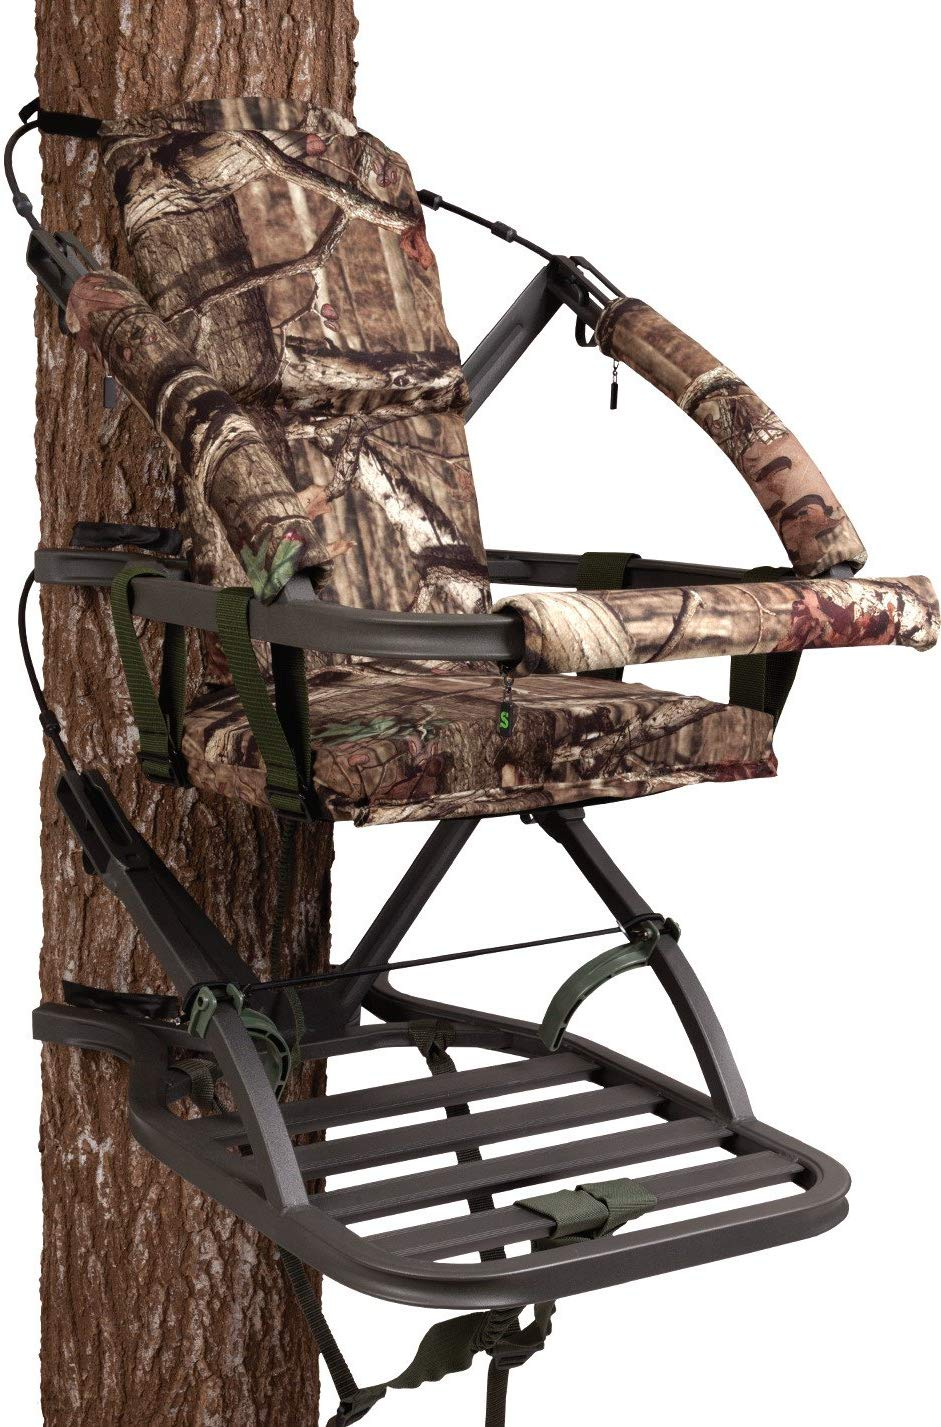 Summit Tree stands Mini Viper SD Climbing Tree stand, Mossy Oak